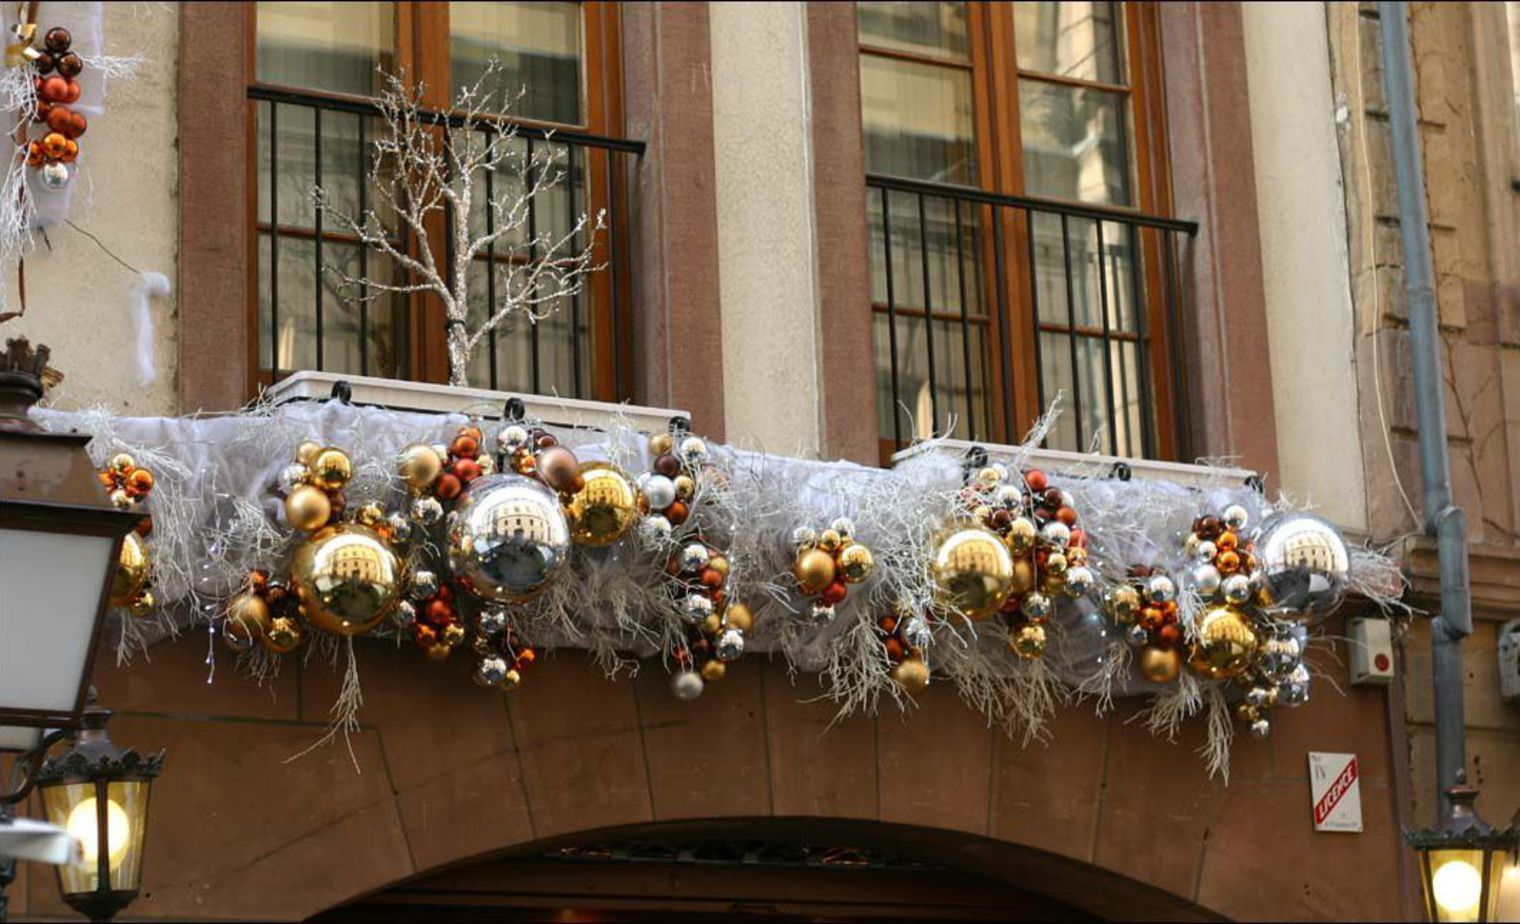 D coration noel exterieur balcon exemples d 39 am nagements for Noel decoration exterieur